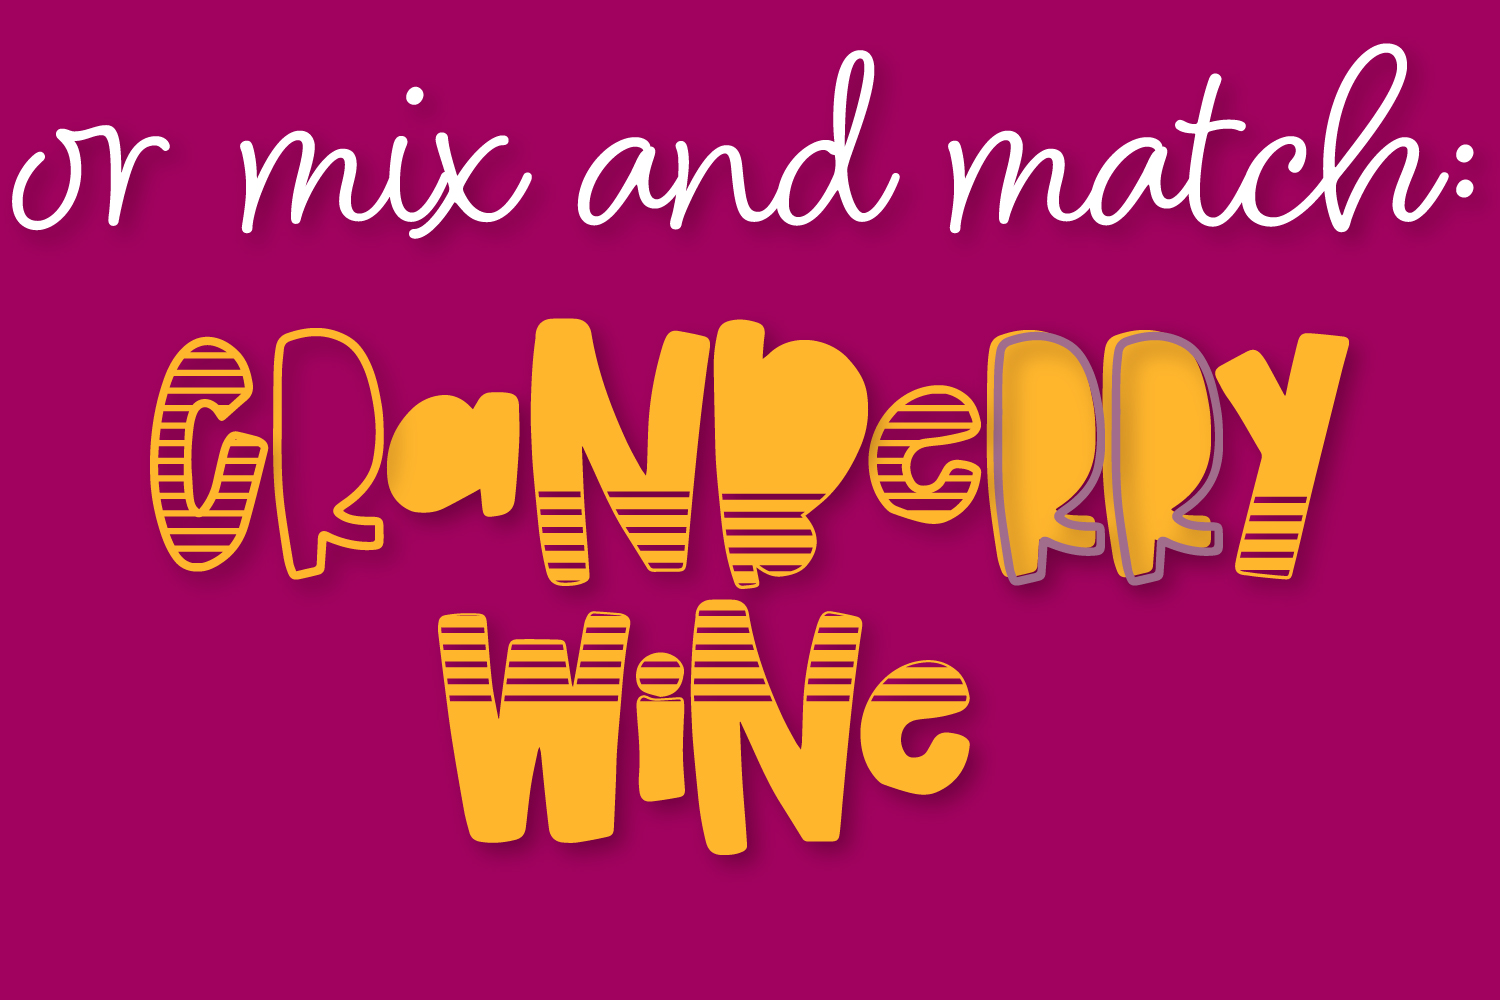 Cranberry Wine - A Striped Font Family of 6 New Fonts! example image 10